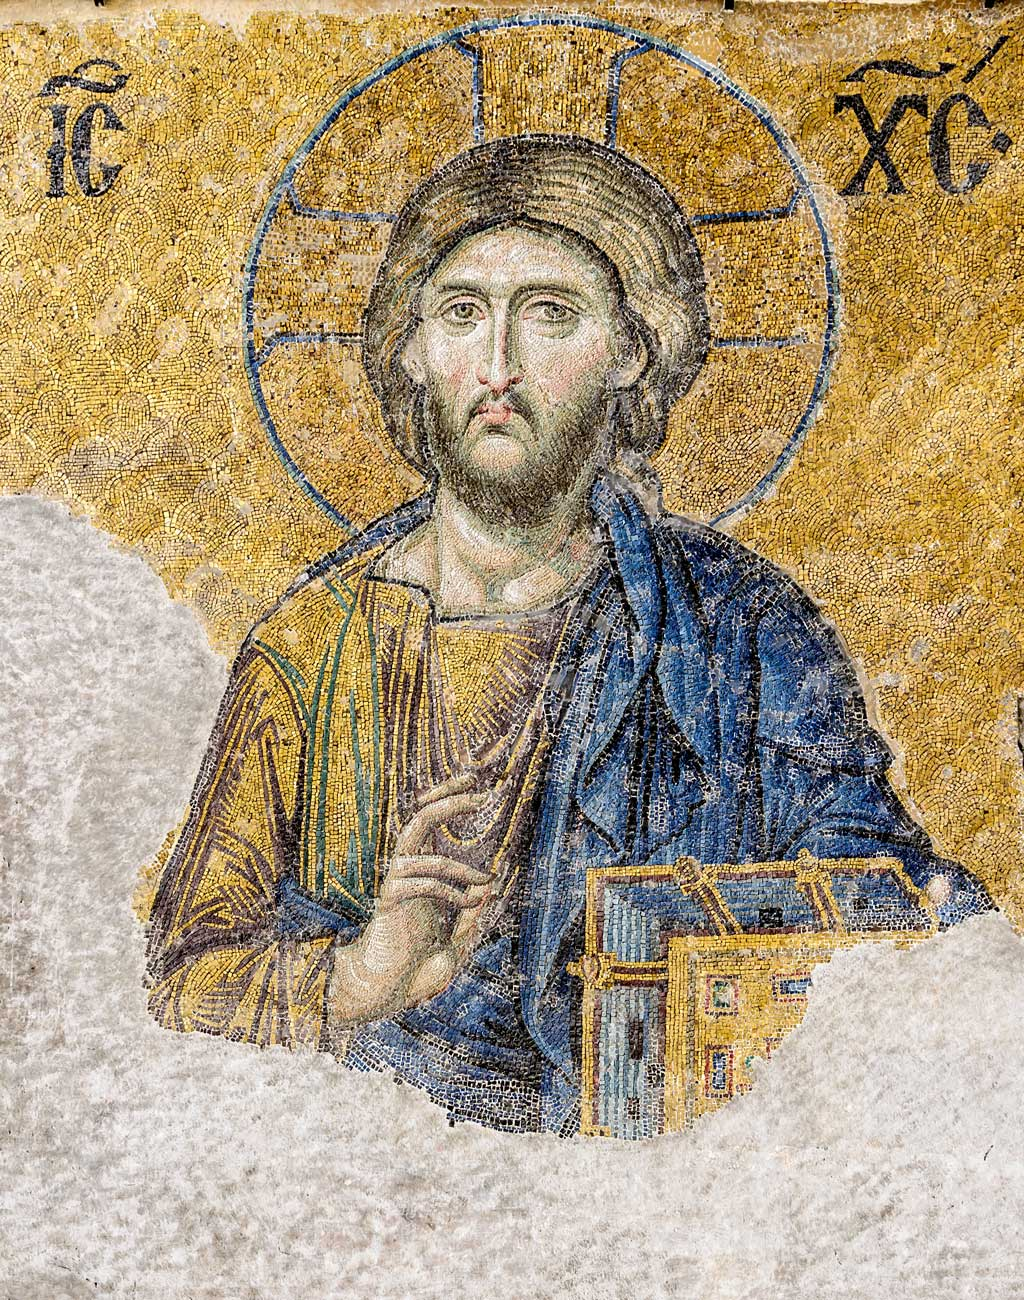 Image of Jesus found within the Hagia Sophia. Carrying a gold-covered New Testament, Jesus looks forward at the onlooker giving a gesture of blessing with his left hand. On either side of the icon are both halves of the Greek Christogram which together spell Jesus Christ.